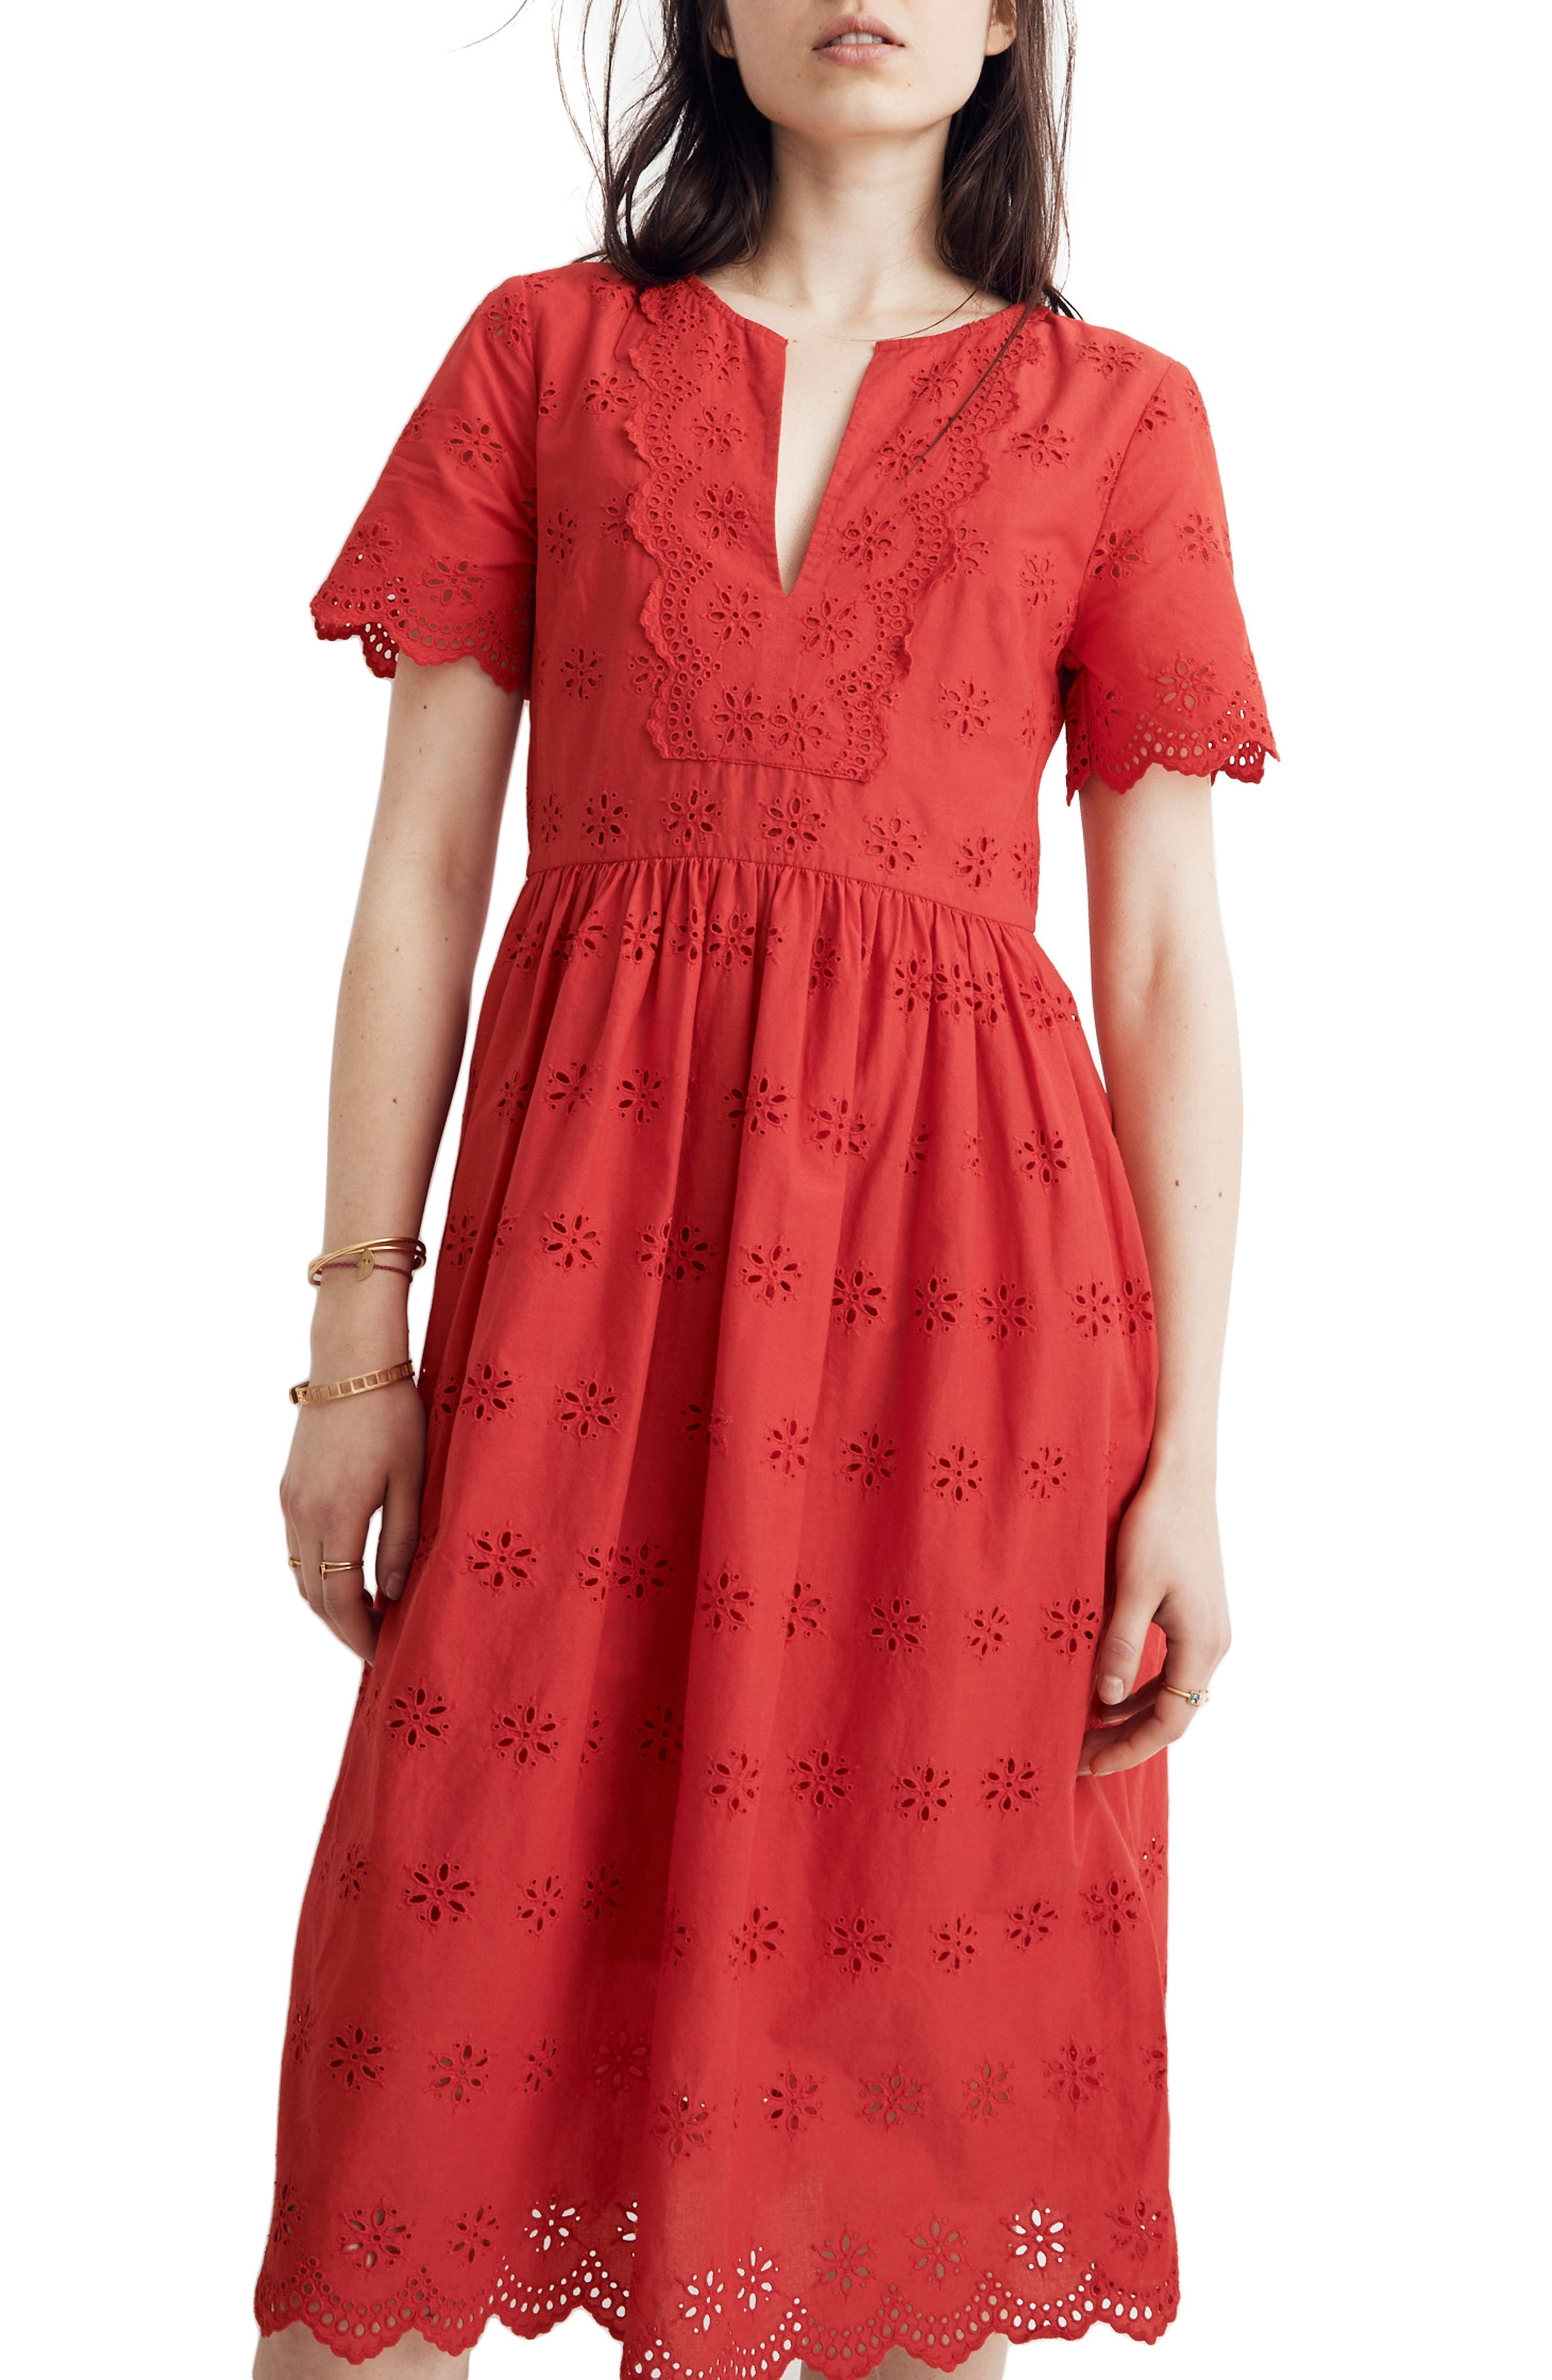 Madewell Scallop Eyelet Midi Dress, Red